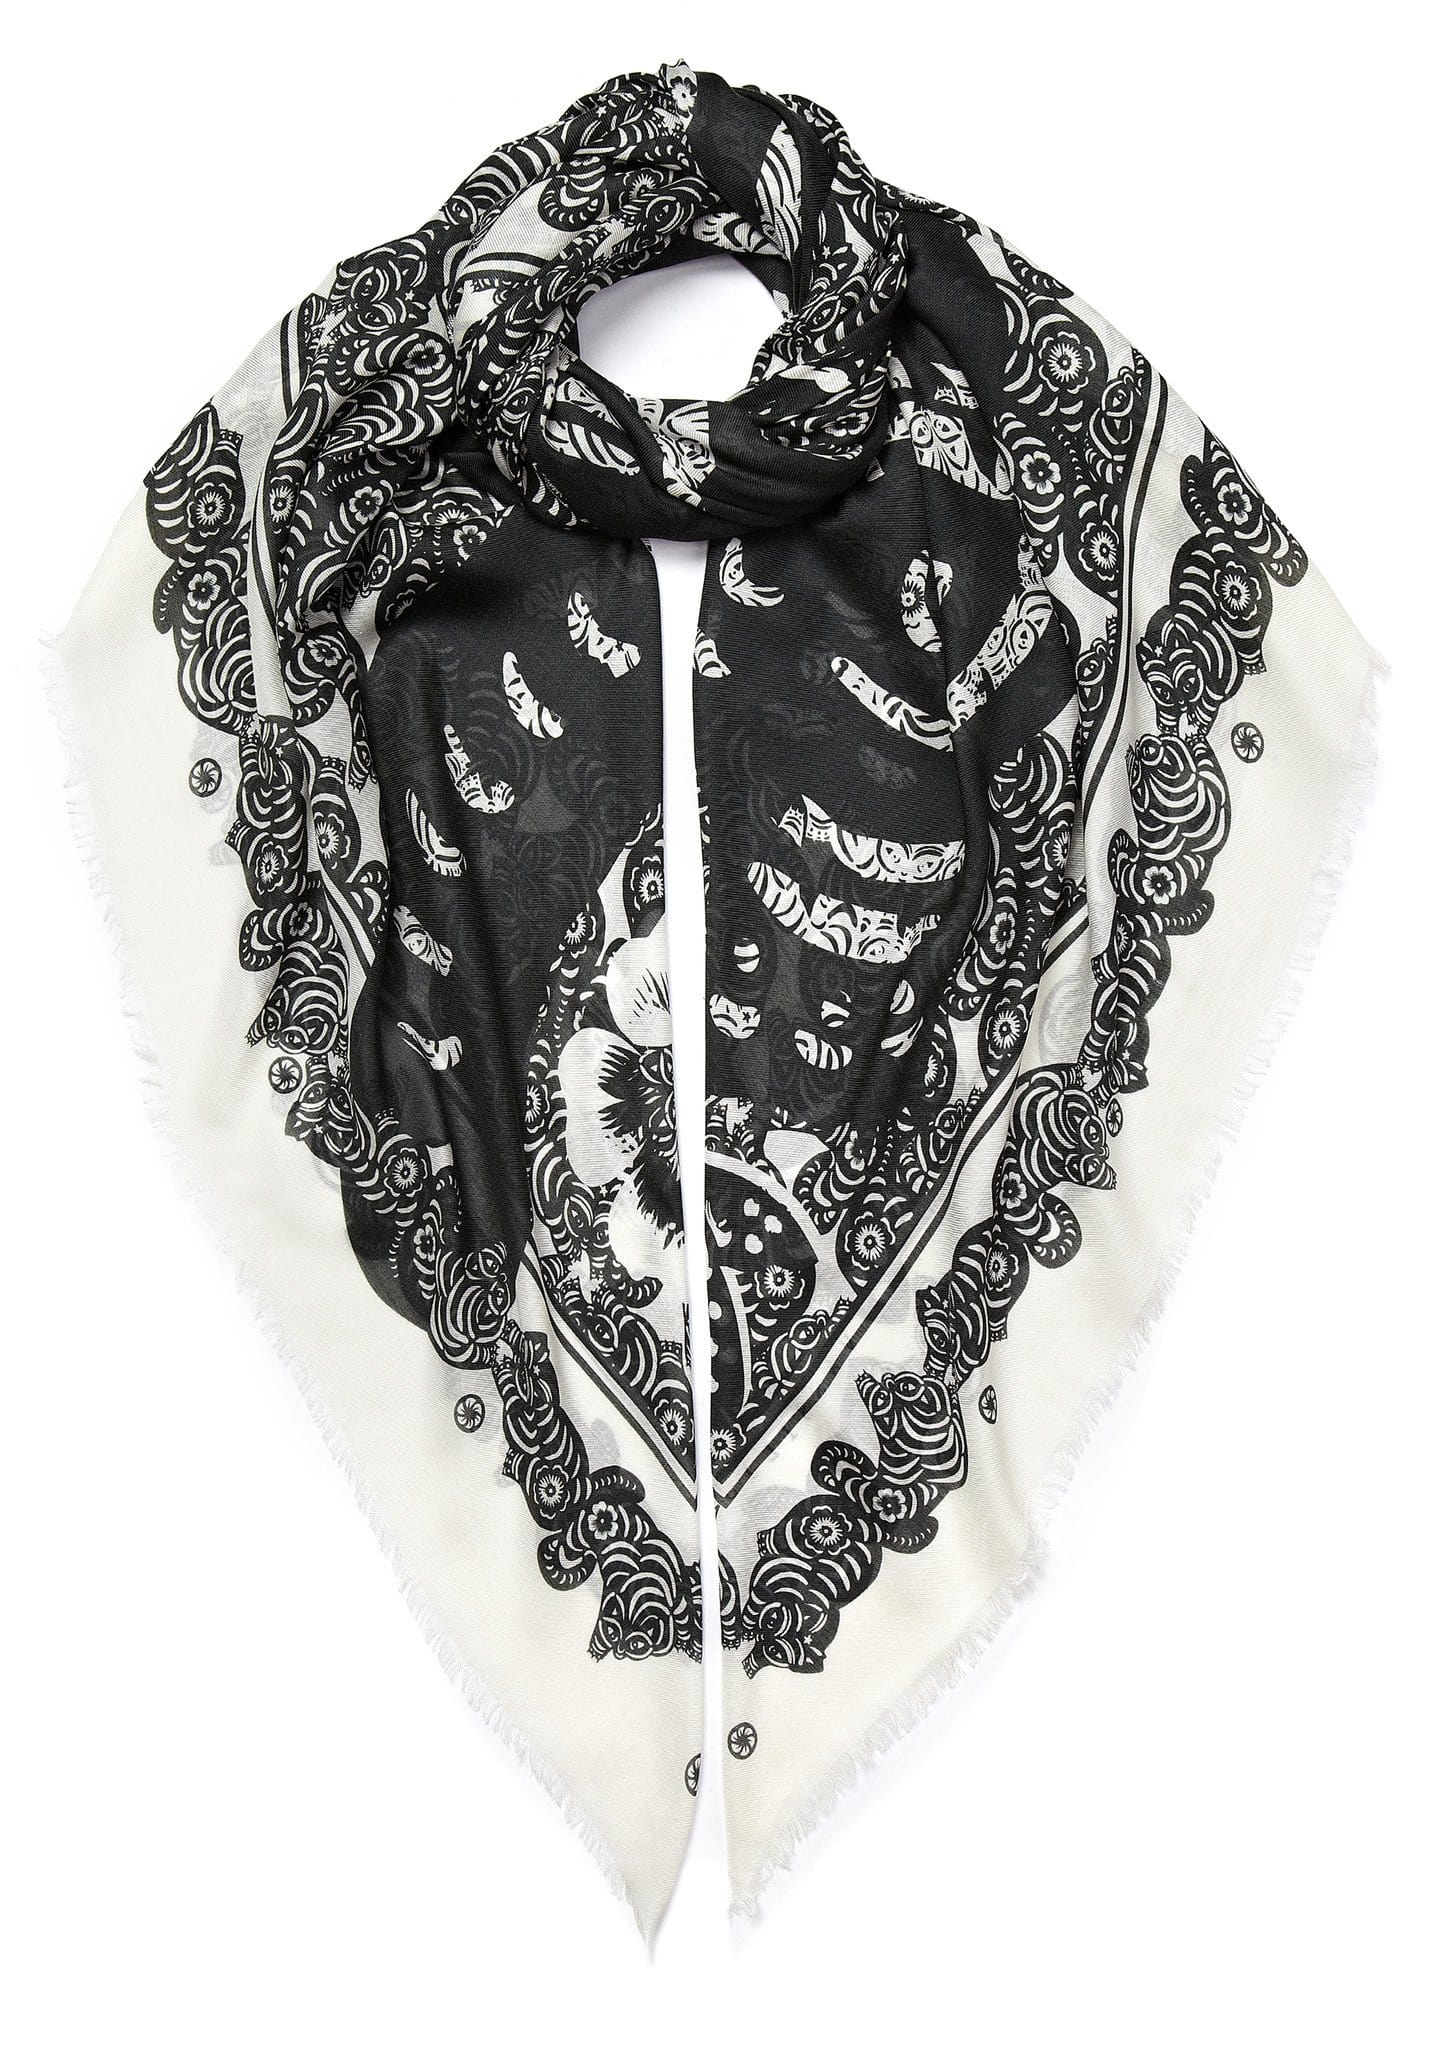 Vassilisa: Cat print scarf black and white | Accessories > Scarves,Accessories -  Hiphunters Shop